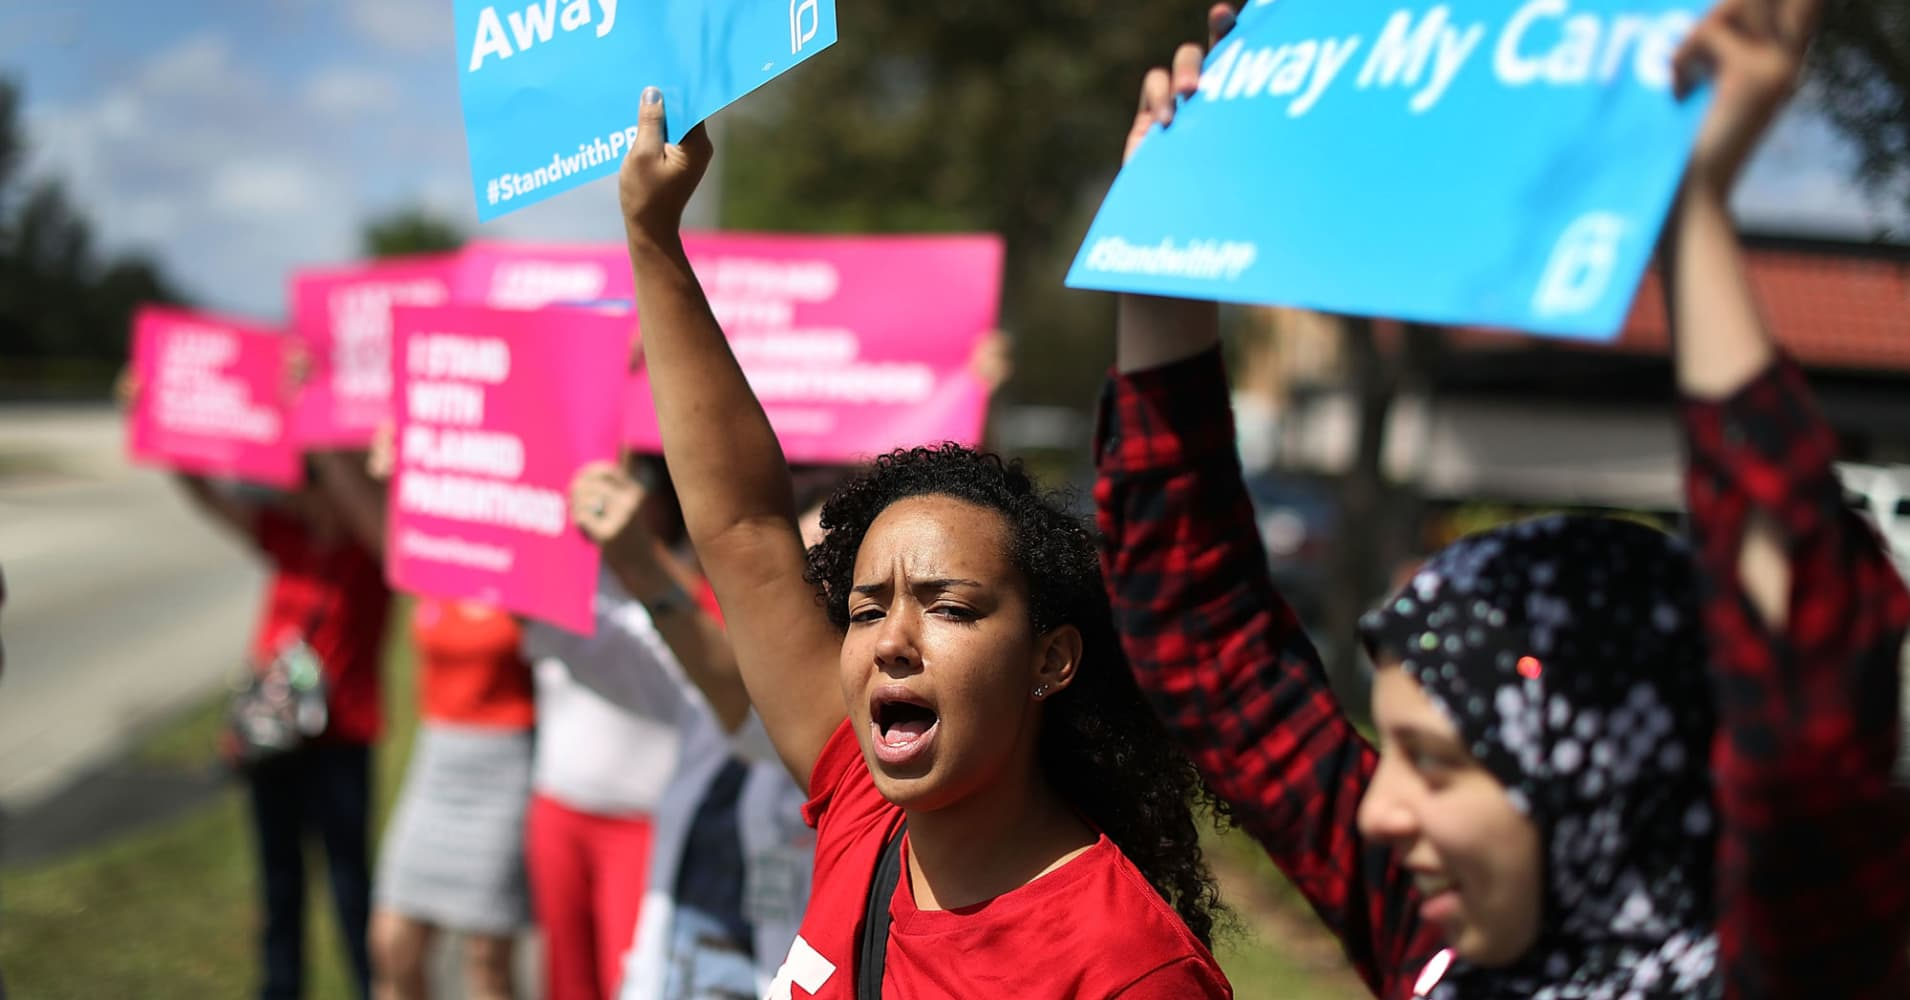 Report shows significant increase in IUDs after Trump election